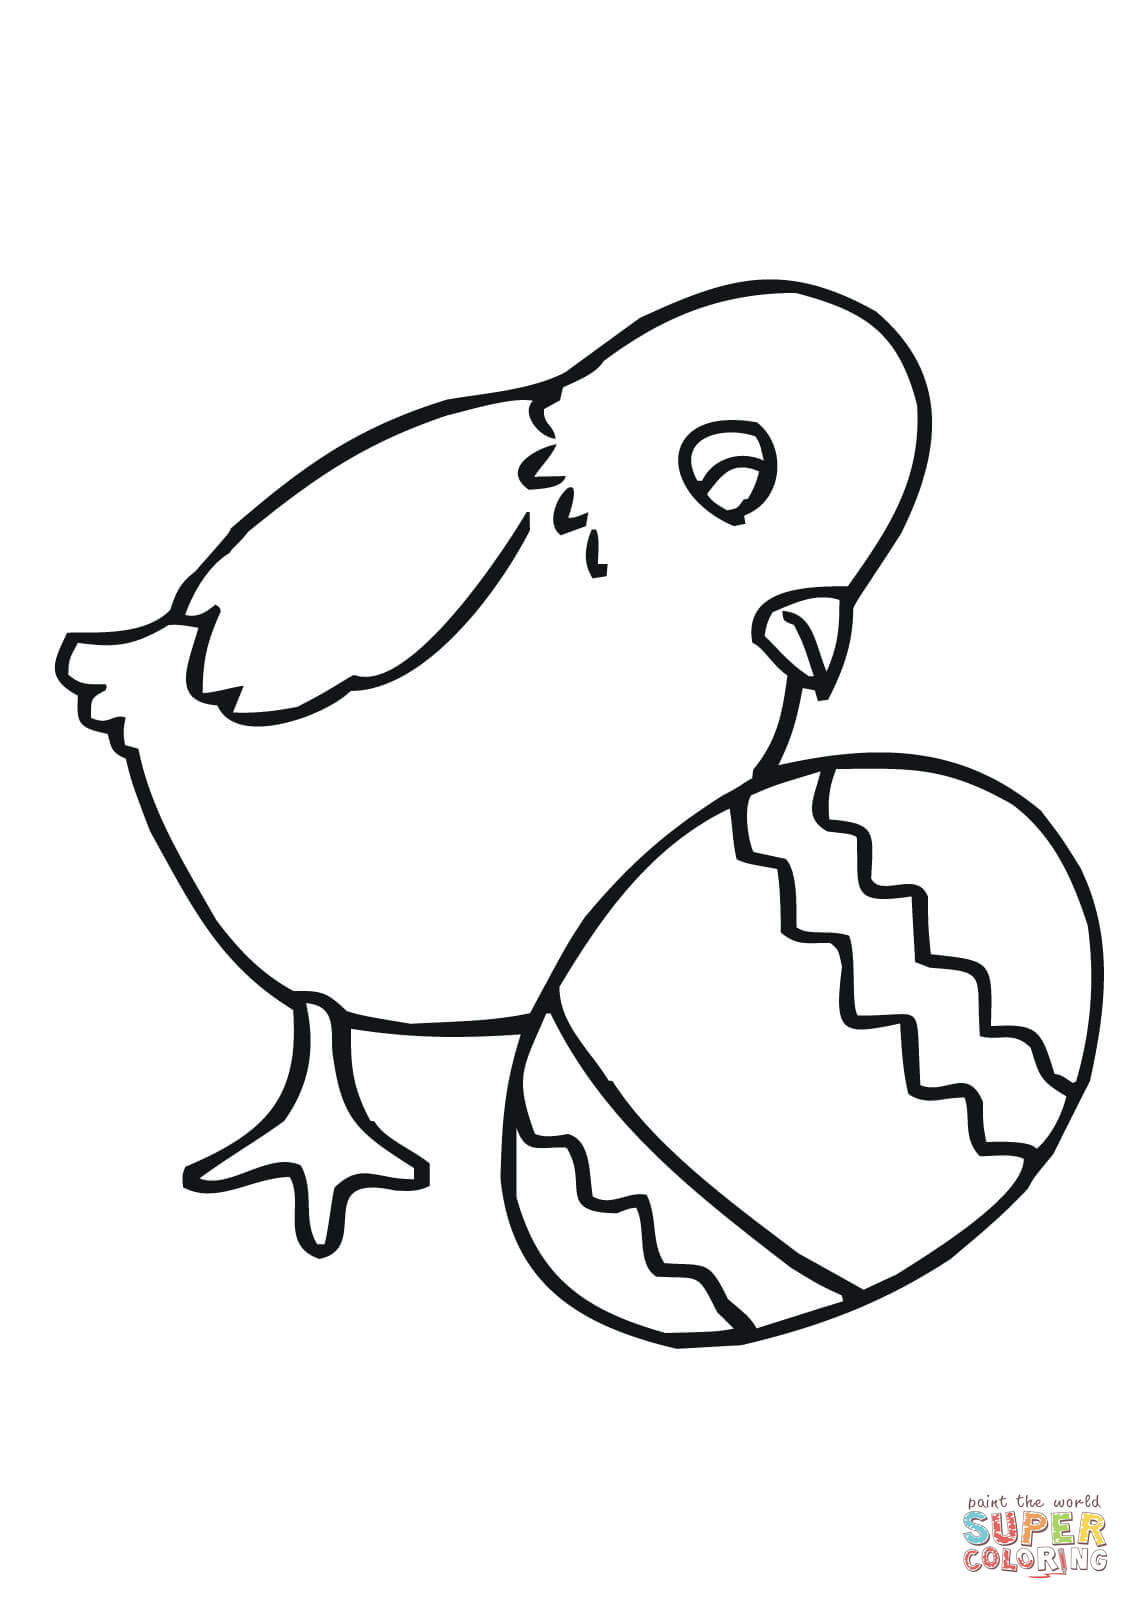 Easter Chick With Egg Coloring Page | Free Printable Coloring Pages - Free Printable Easter Baby Chick Coloring Pages